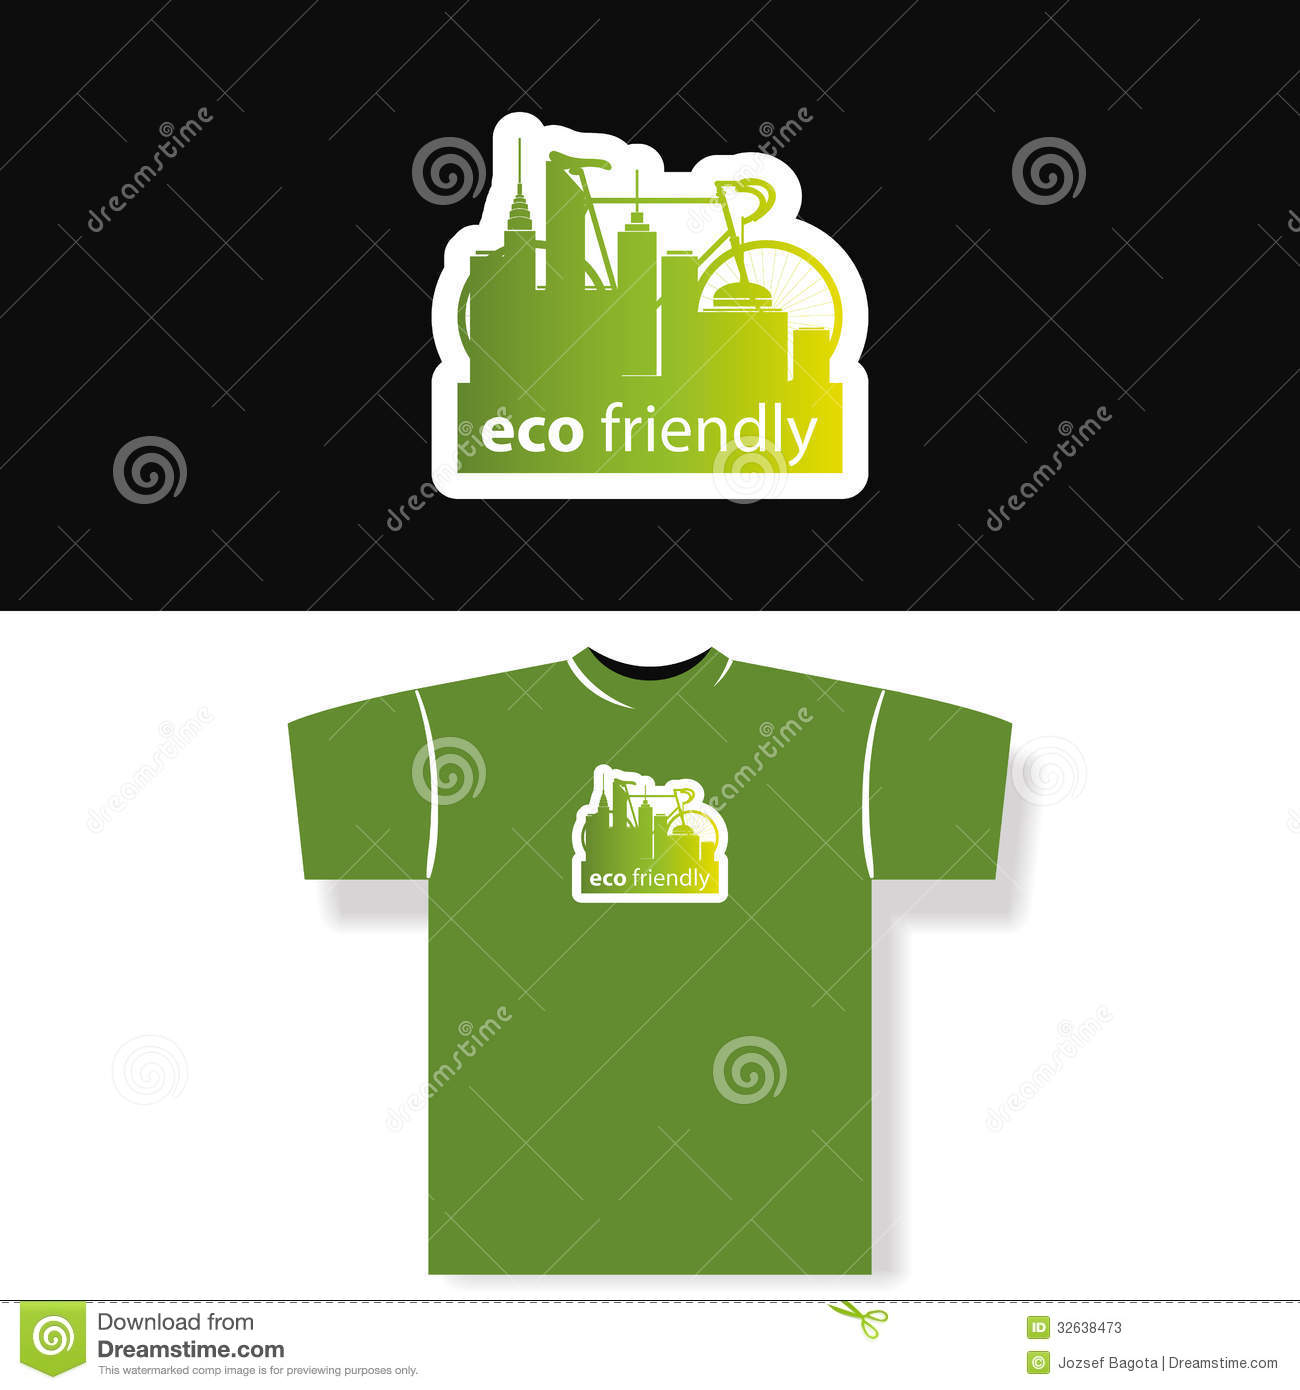 Eco friendly t shirt design stock vector illustration for Environmentally friendly t shirts